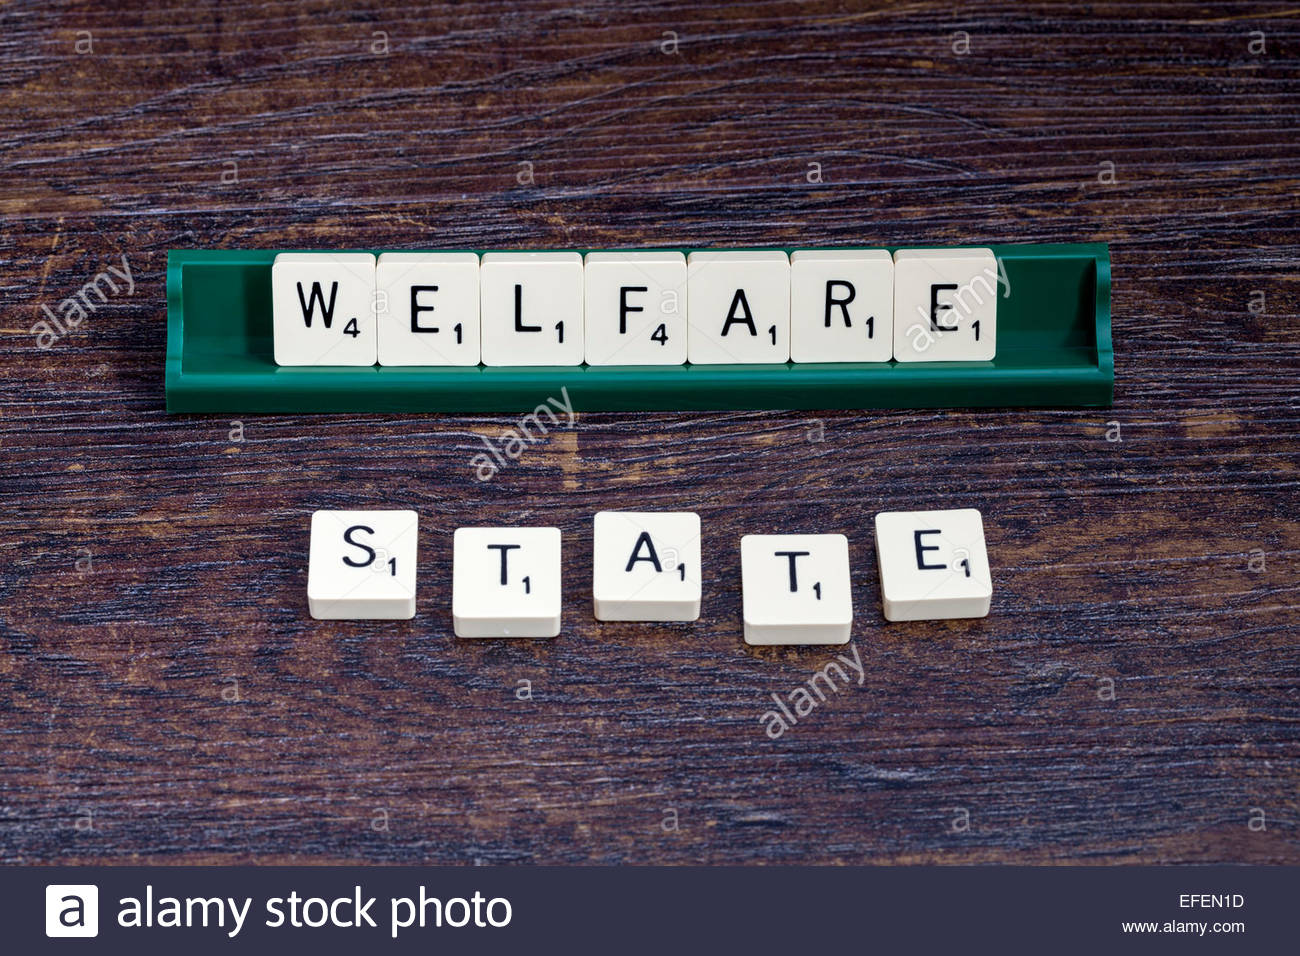 Welfare State spelled out with scrabble letters - Stock Image